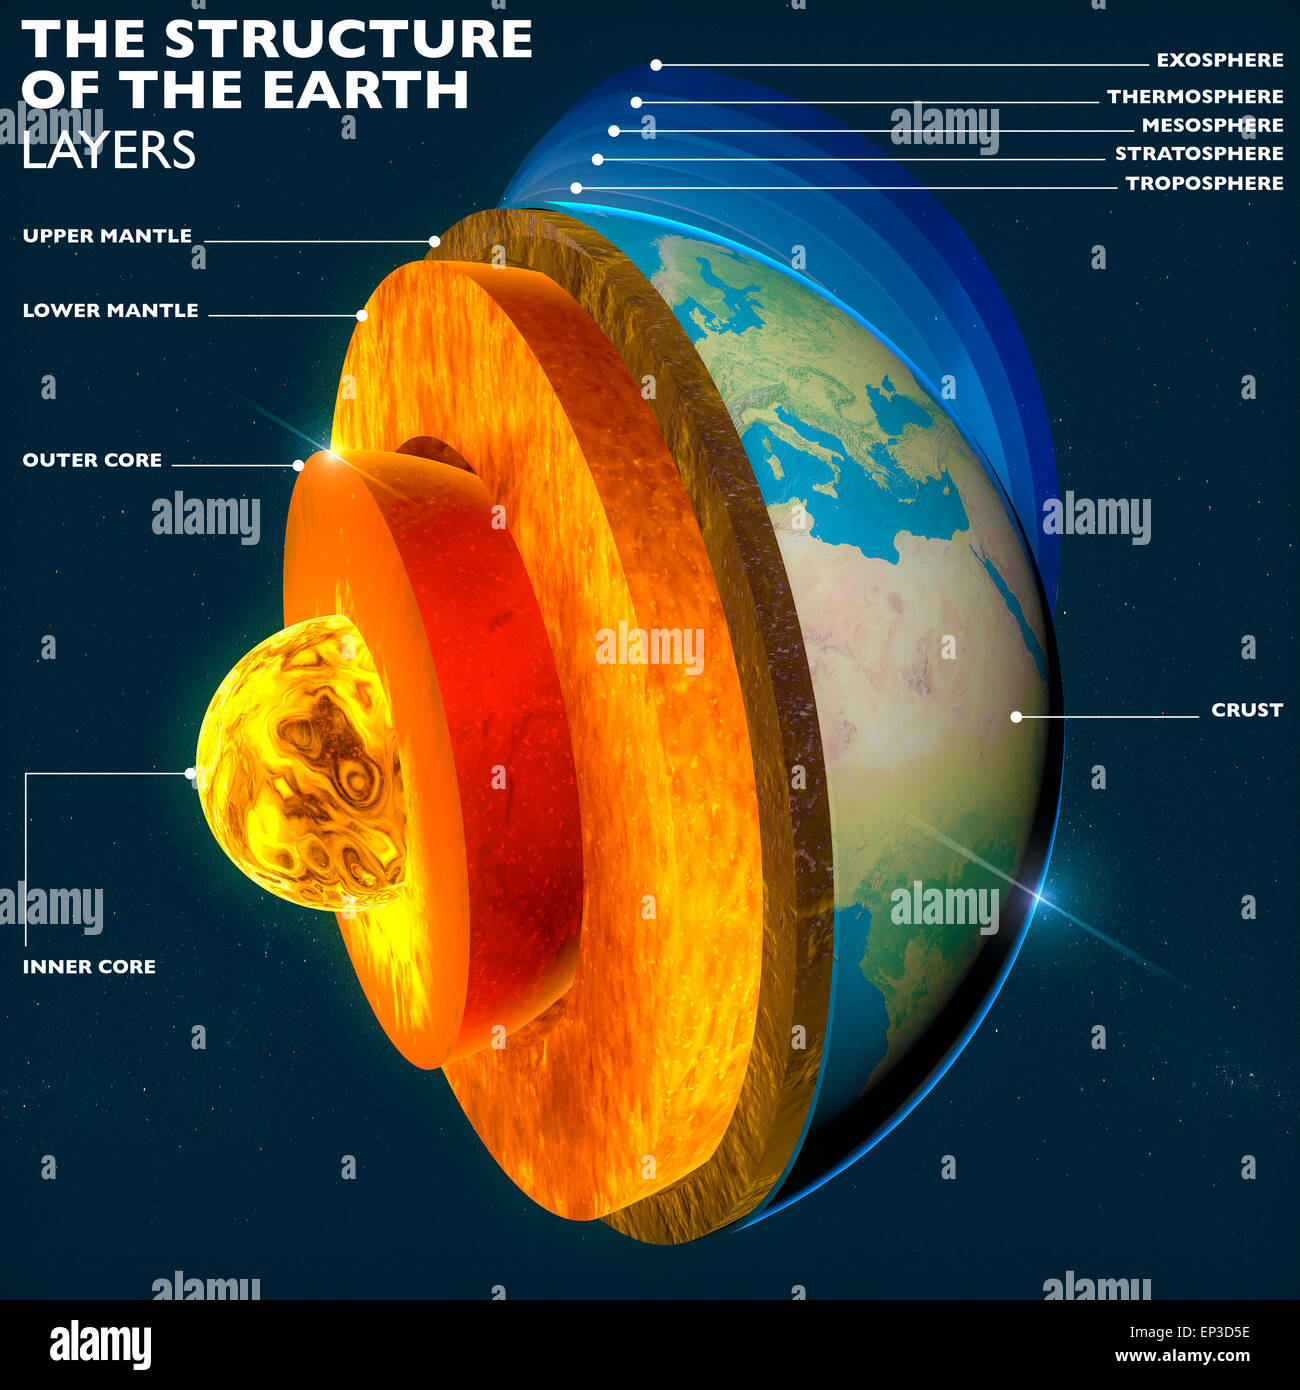 Structure Of The Earth  Earth U0026 39 S Core  Section Layers Earth And Sky Stock Photo  82440106